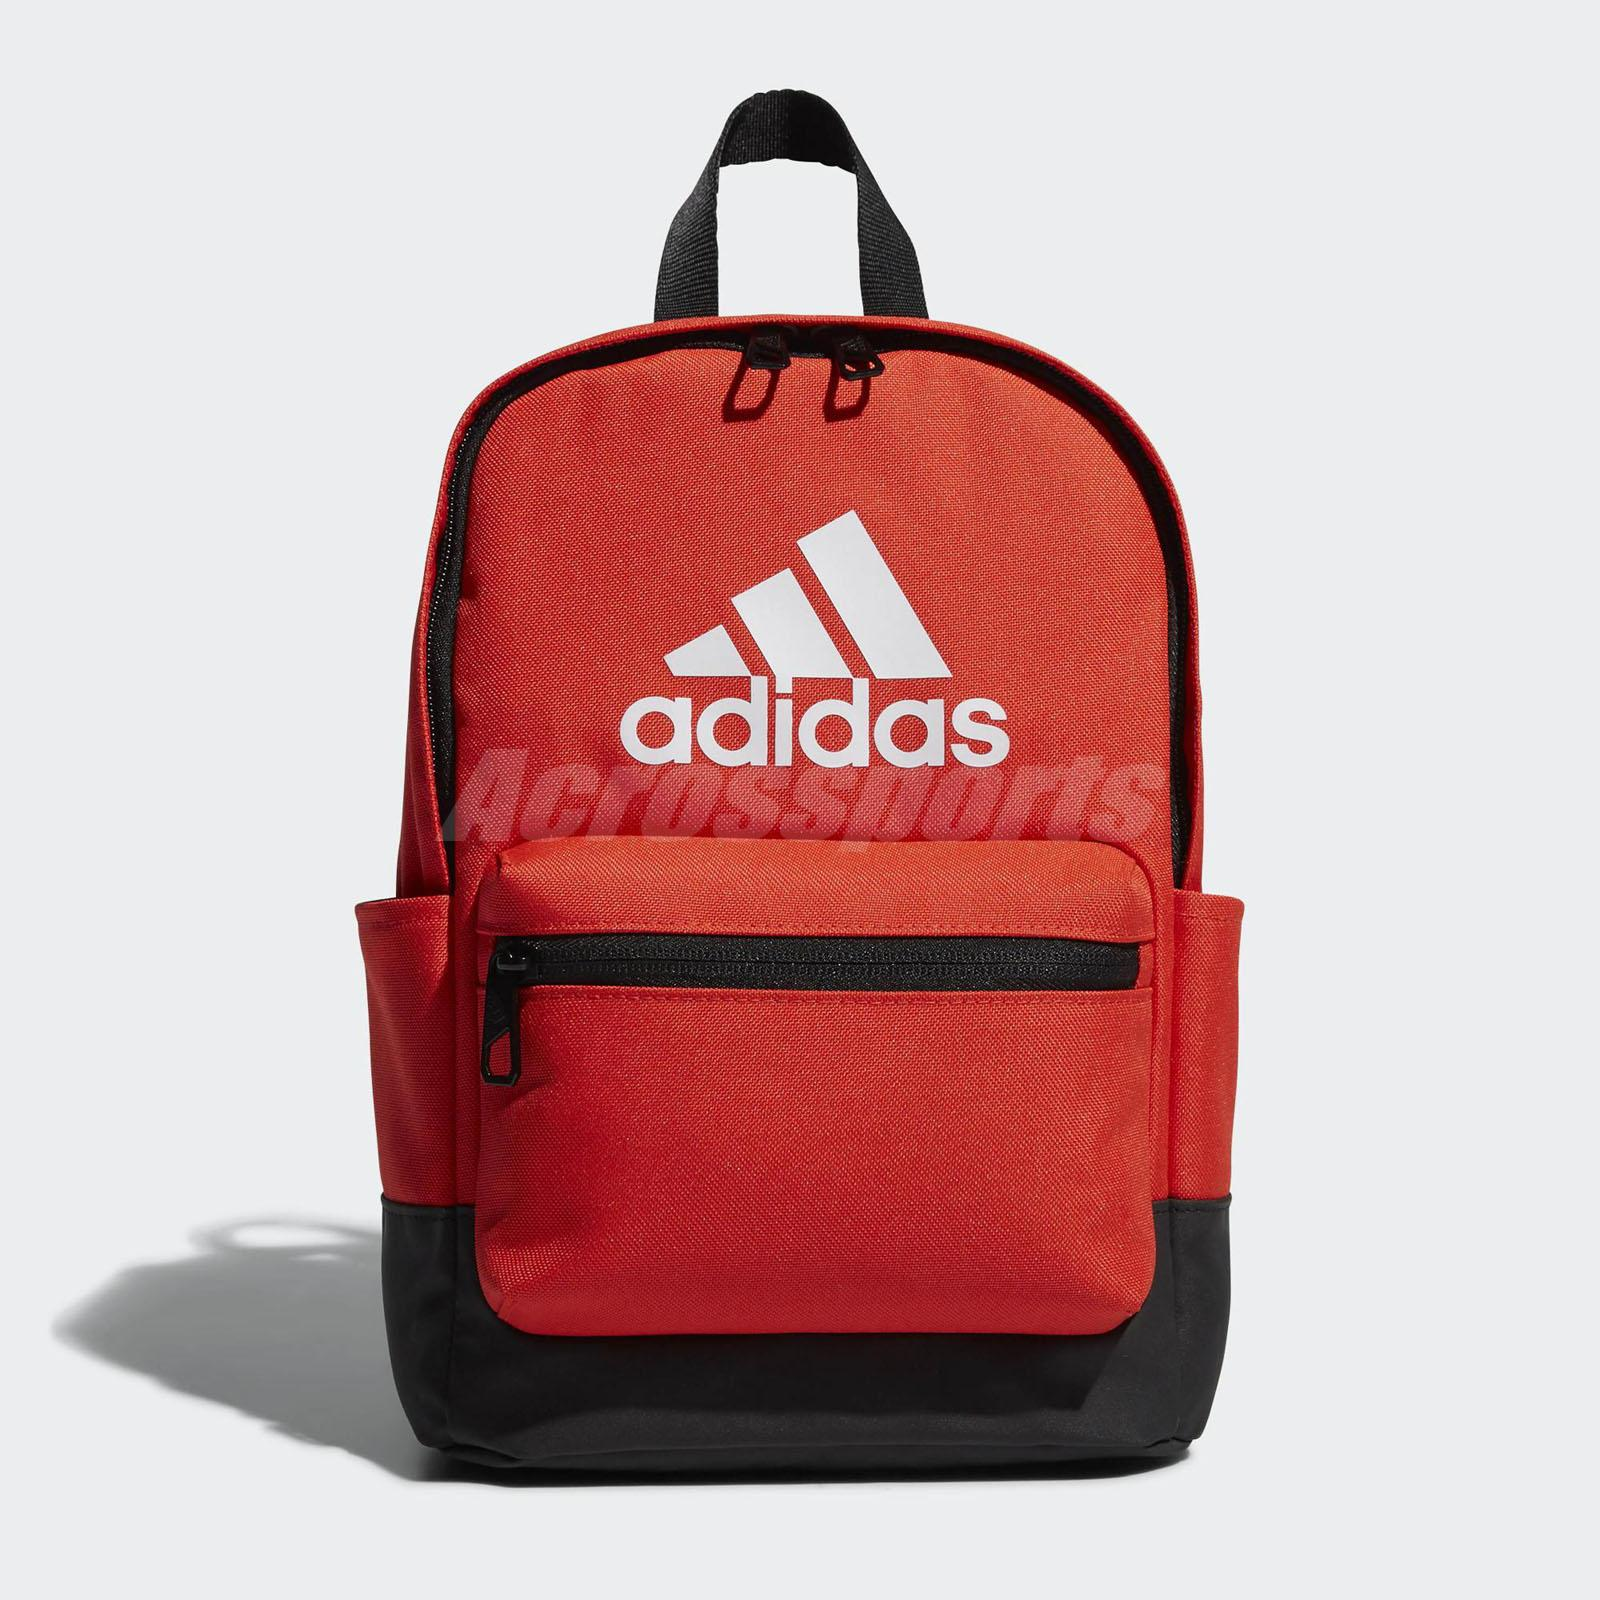 5d03ec61e4 Details about adidas Kids Backpack Classic Sport School Bag Training  Workout Orange DN3507